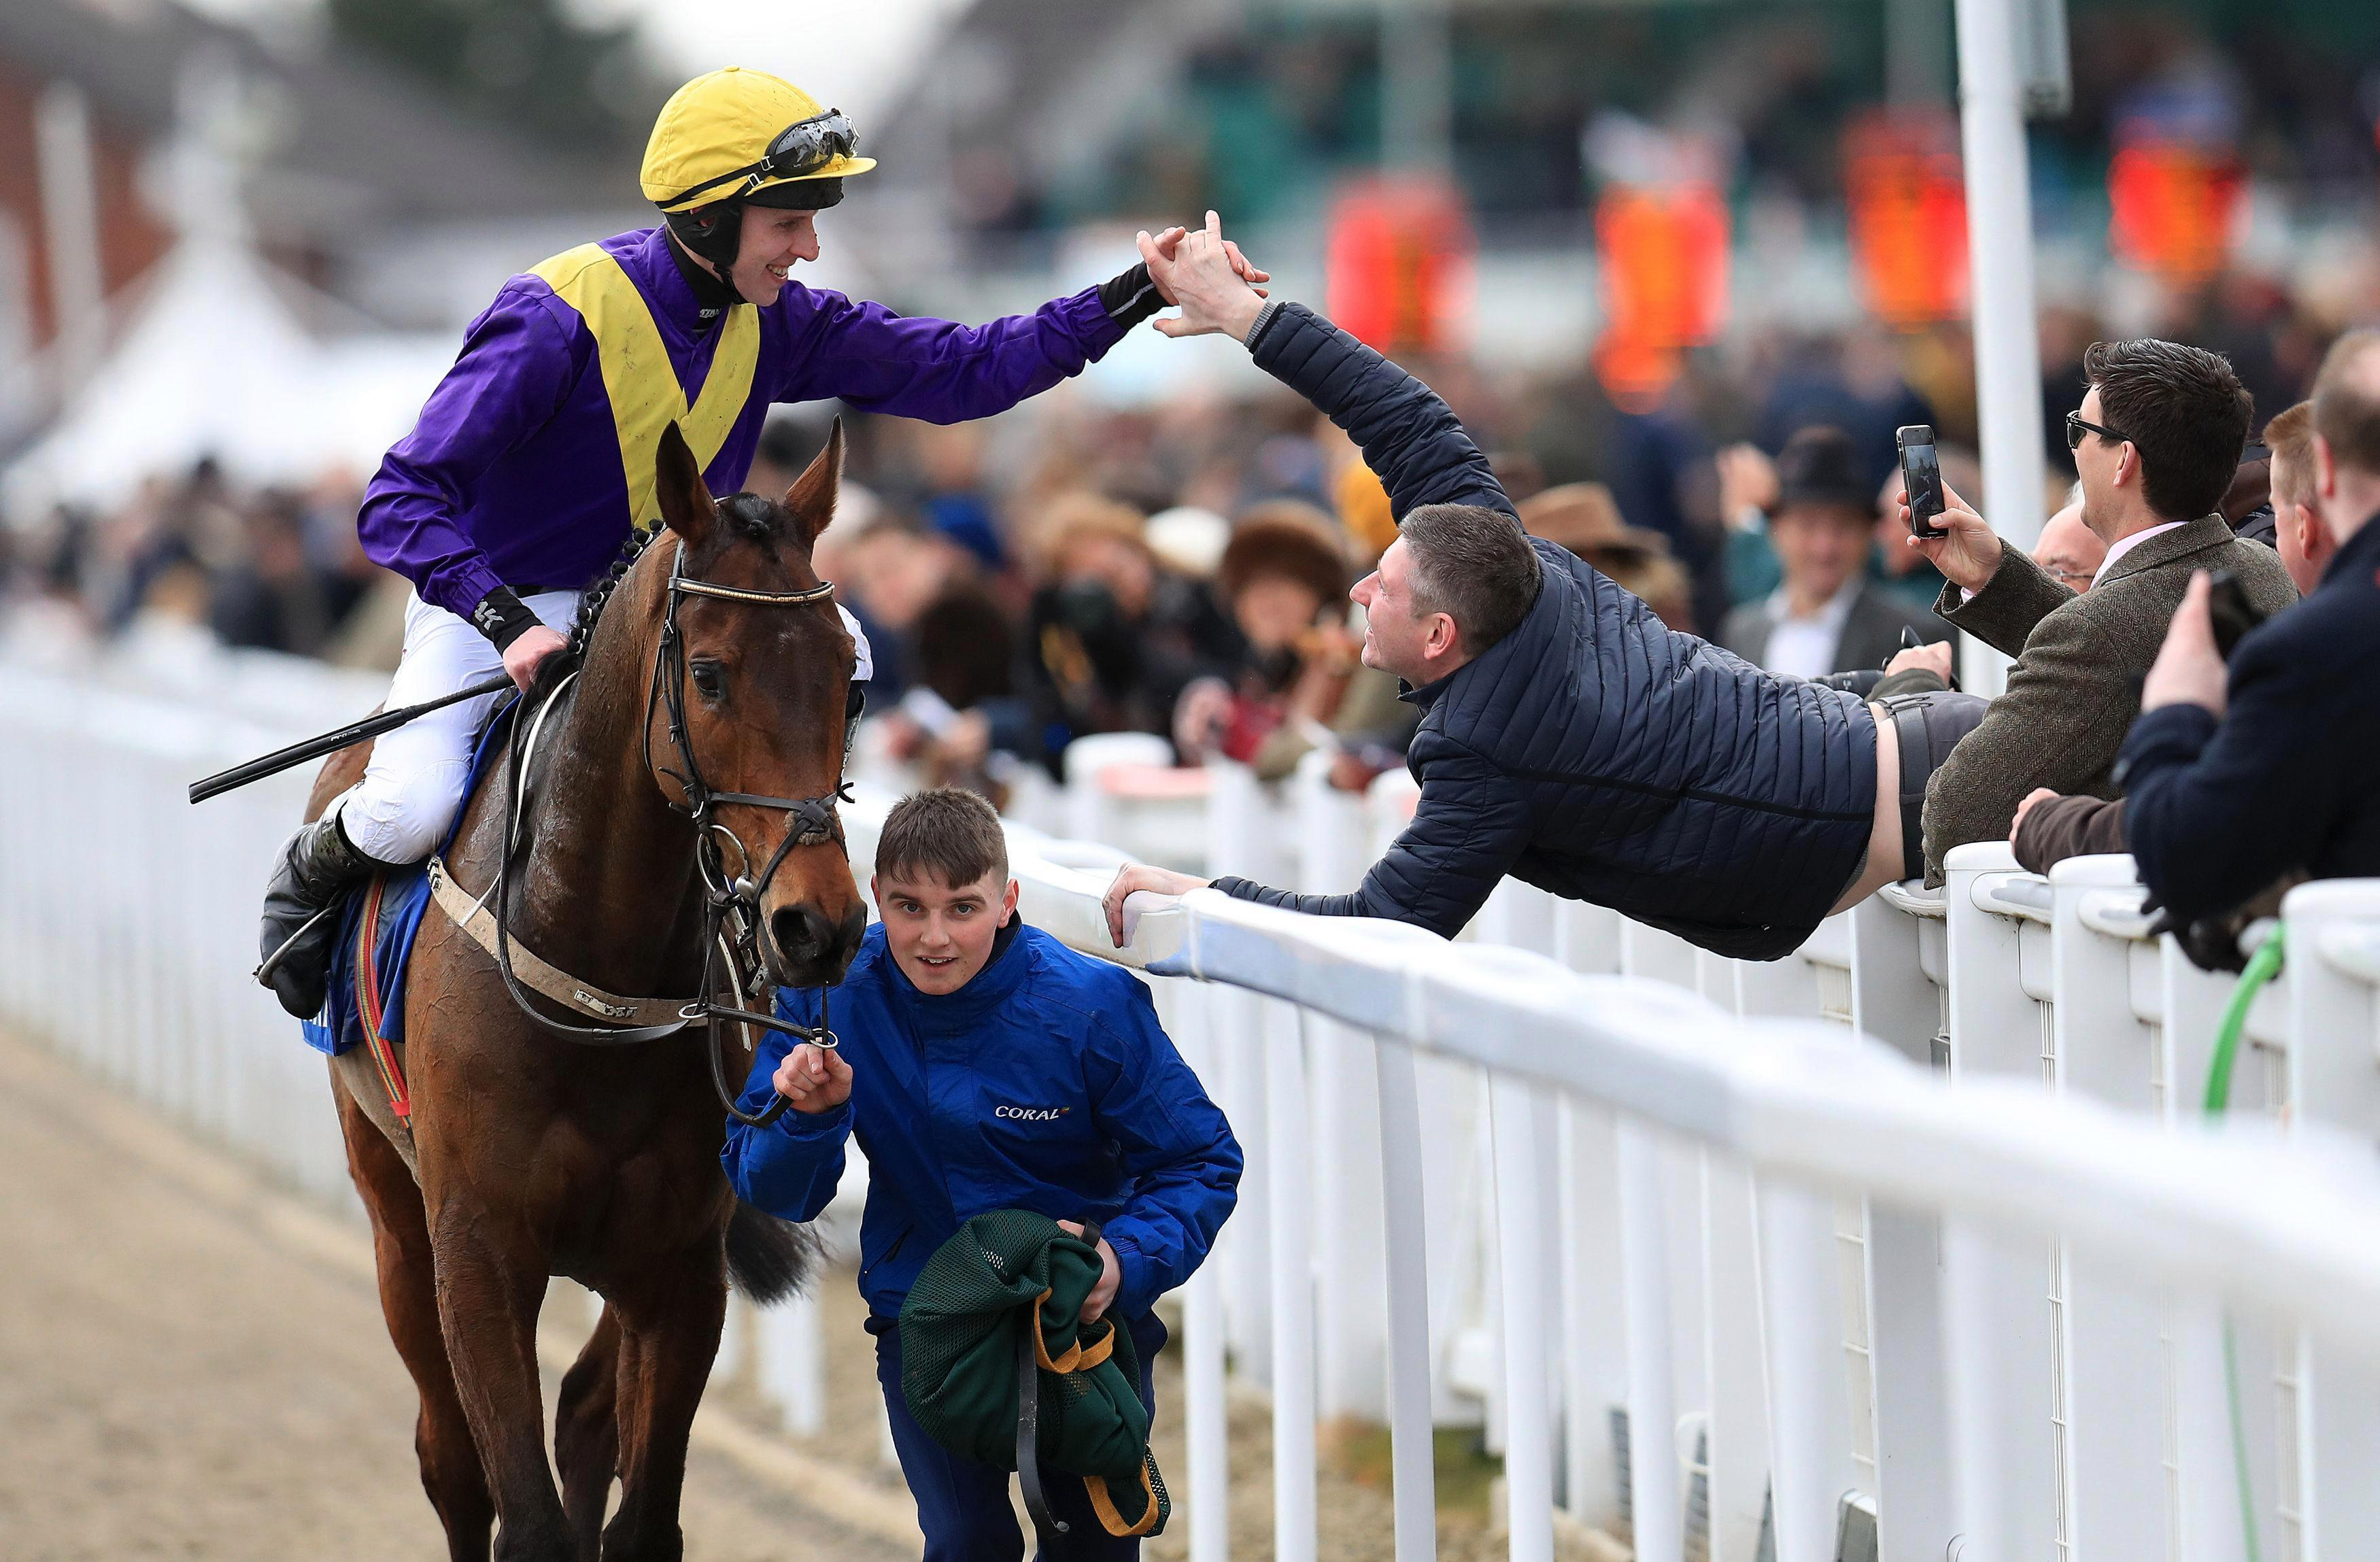 Cheltenham Festival 2019: Coral Cup preview, tv schedule, race time, tips, runners and riders and odds